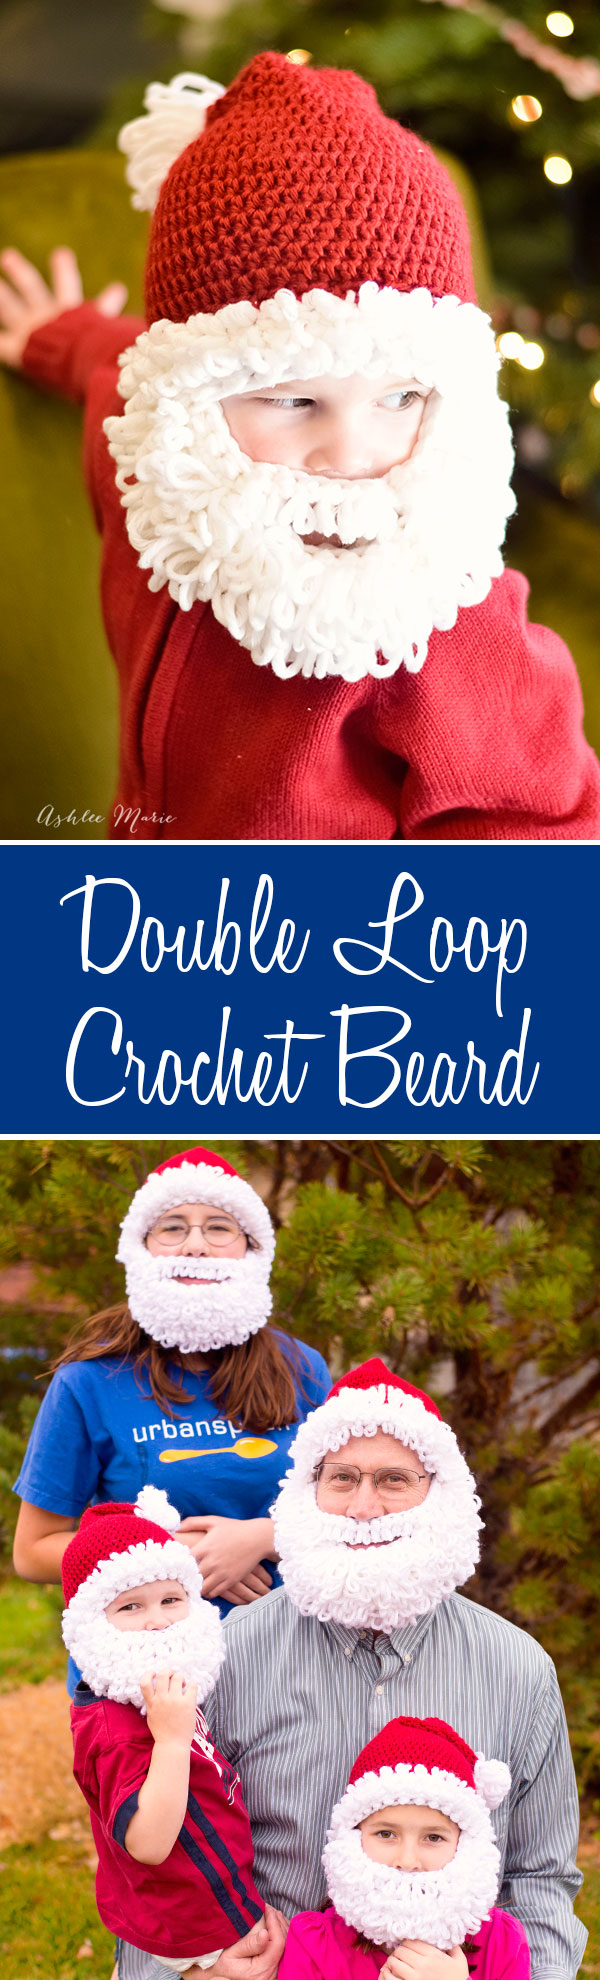 a free pattern for a double loop crochet beard in multiple sizes, perfect for Santa or any other beard